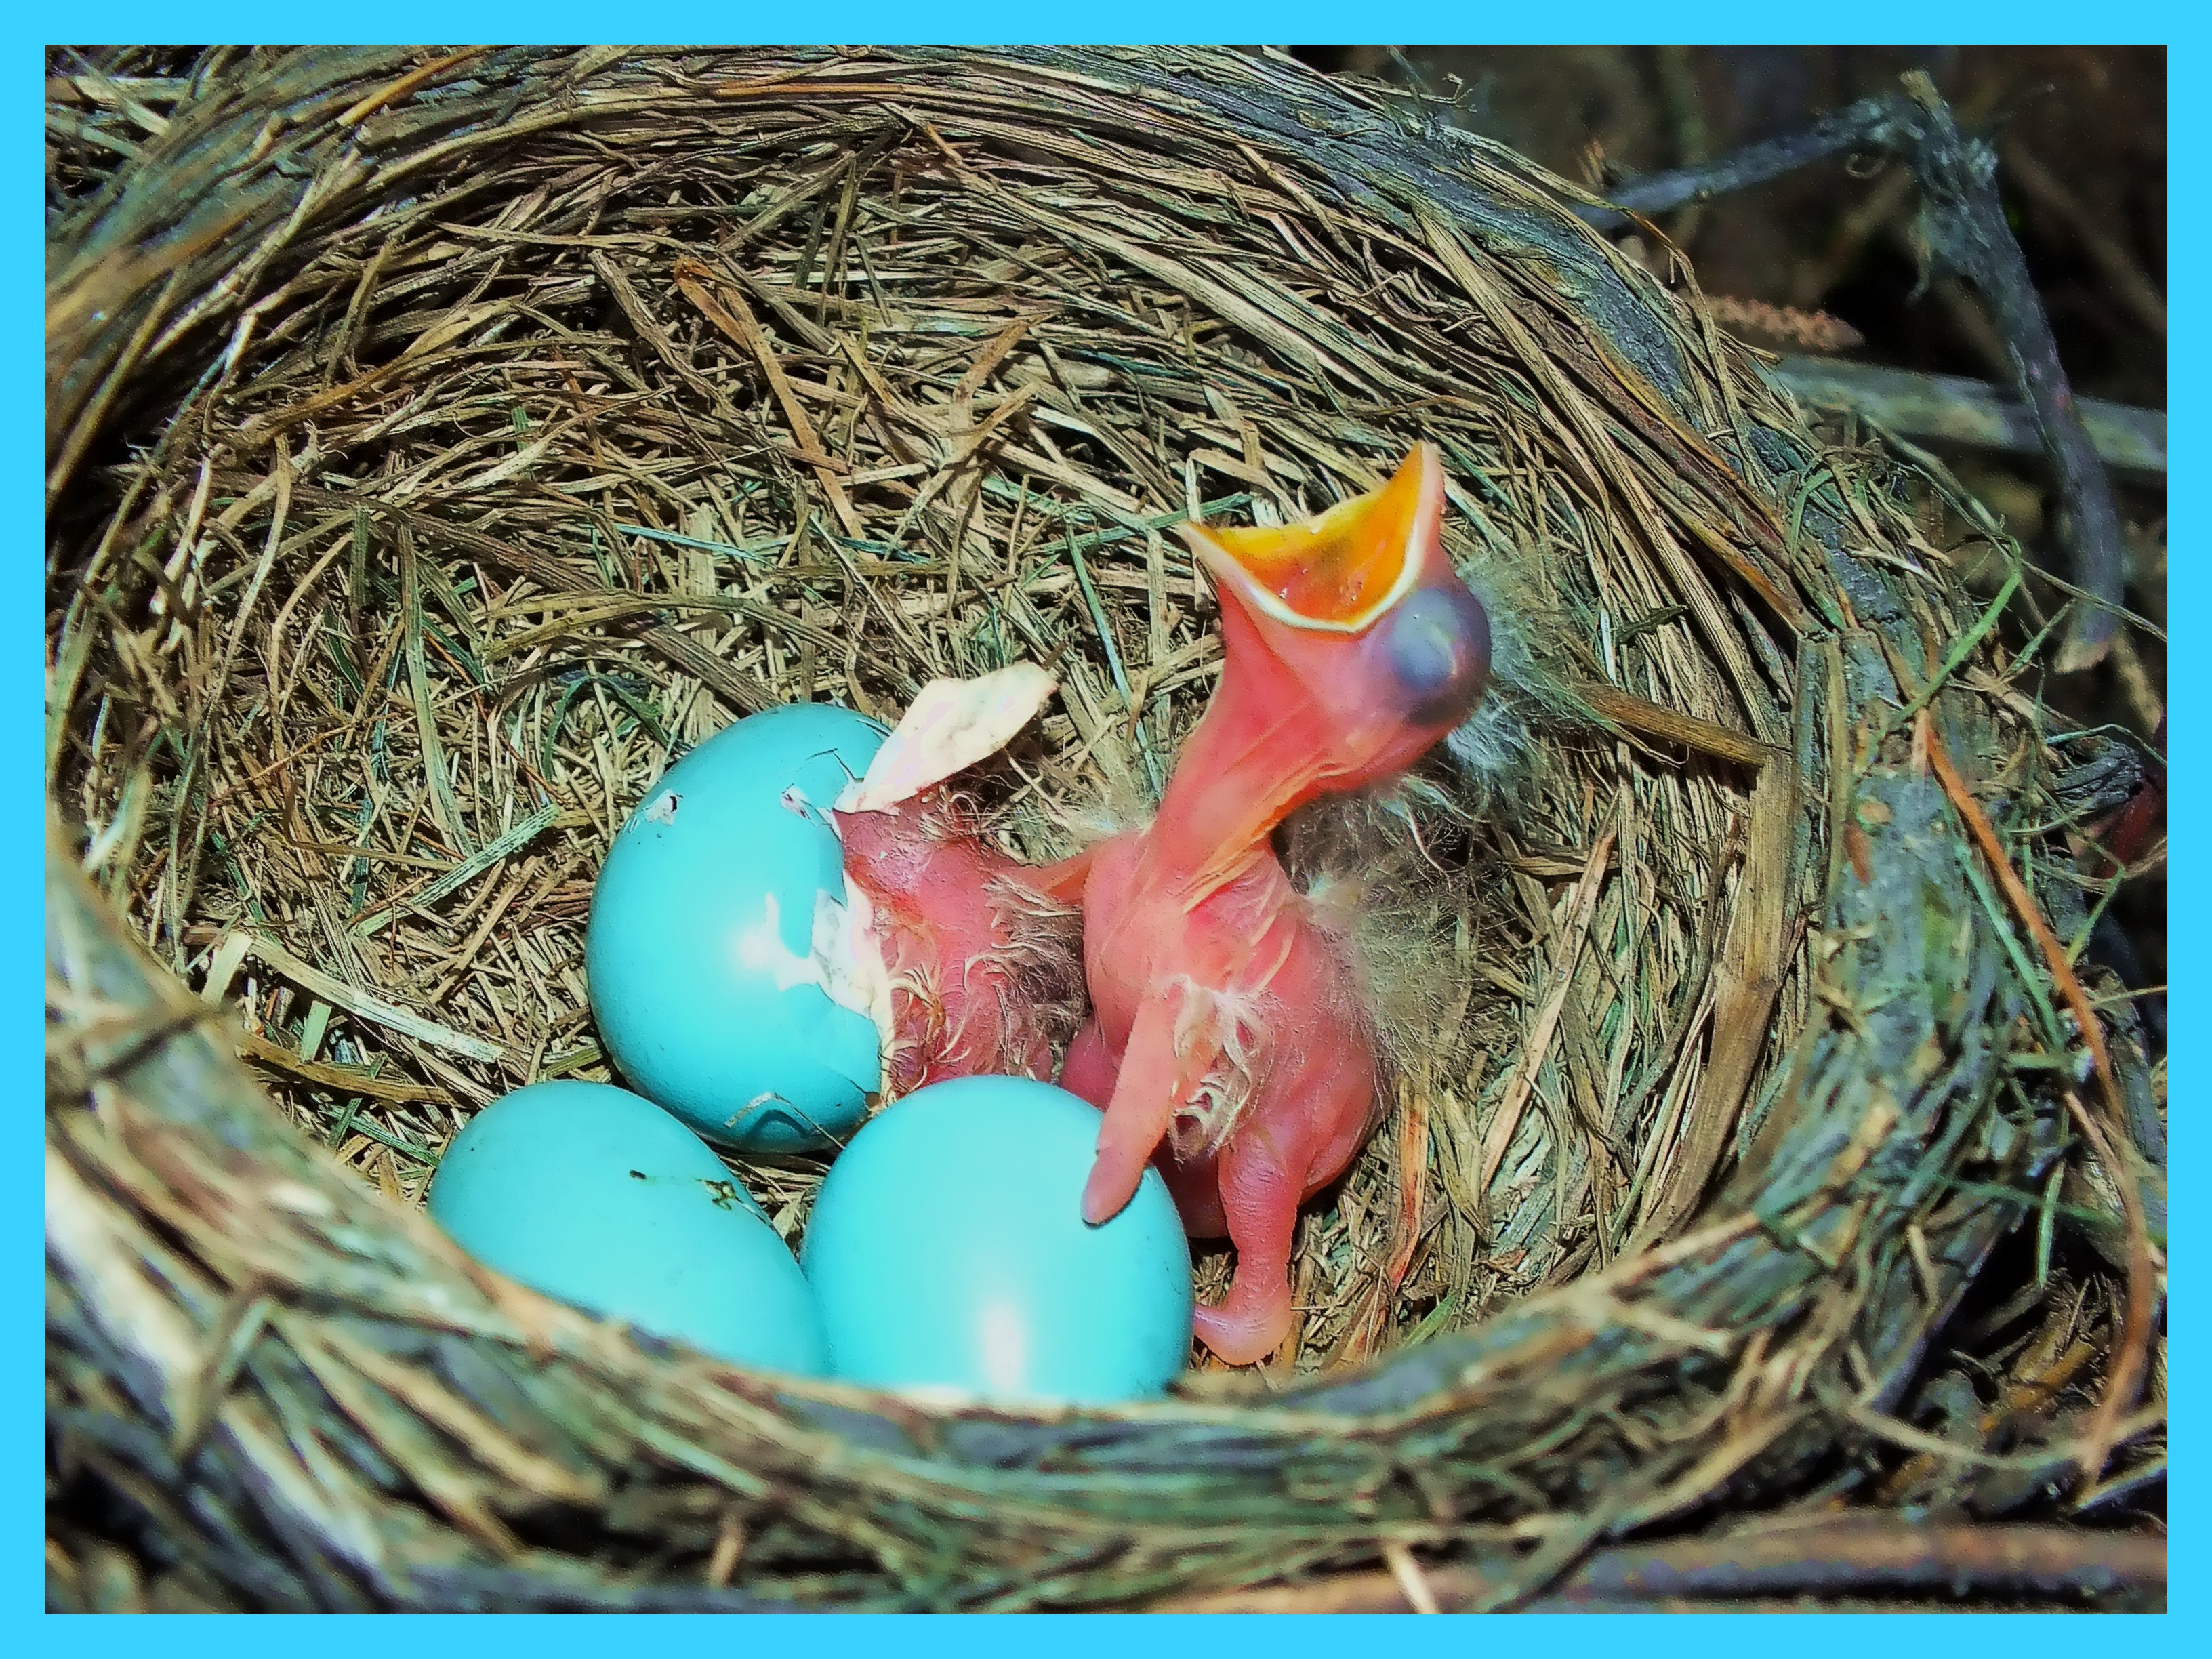 Hatched and Hatching. Photo by Thomas Peace c. 2015